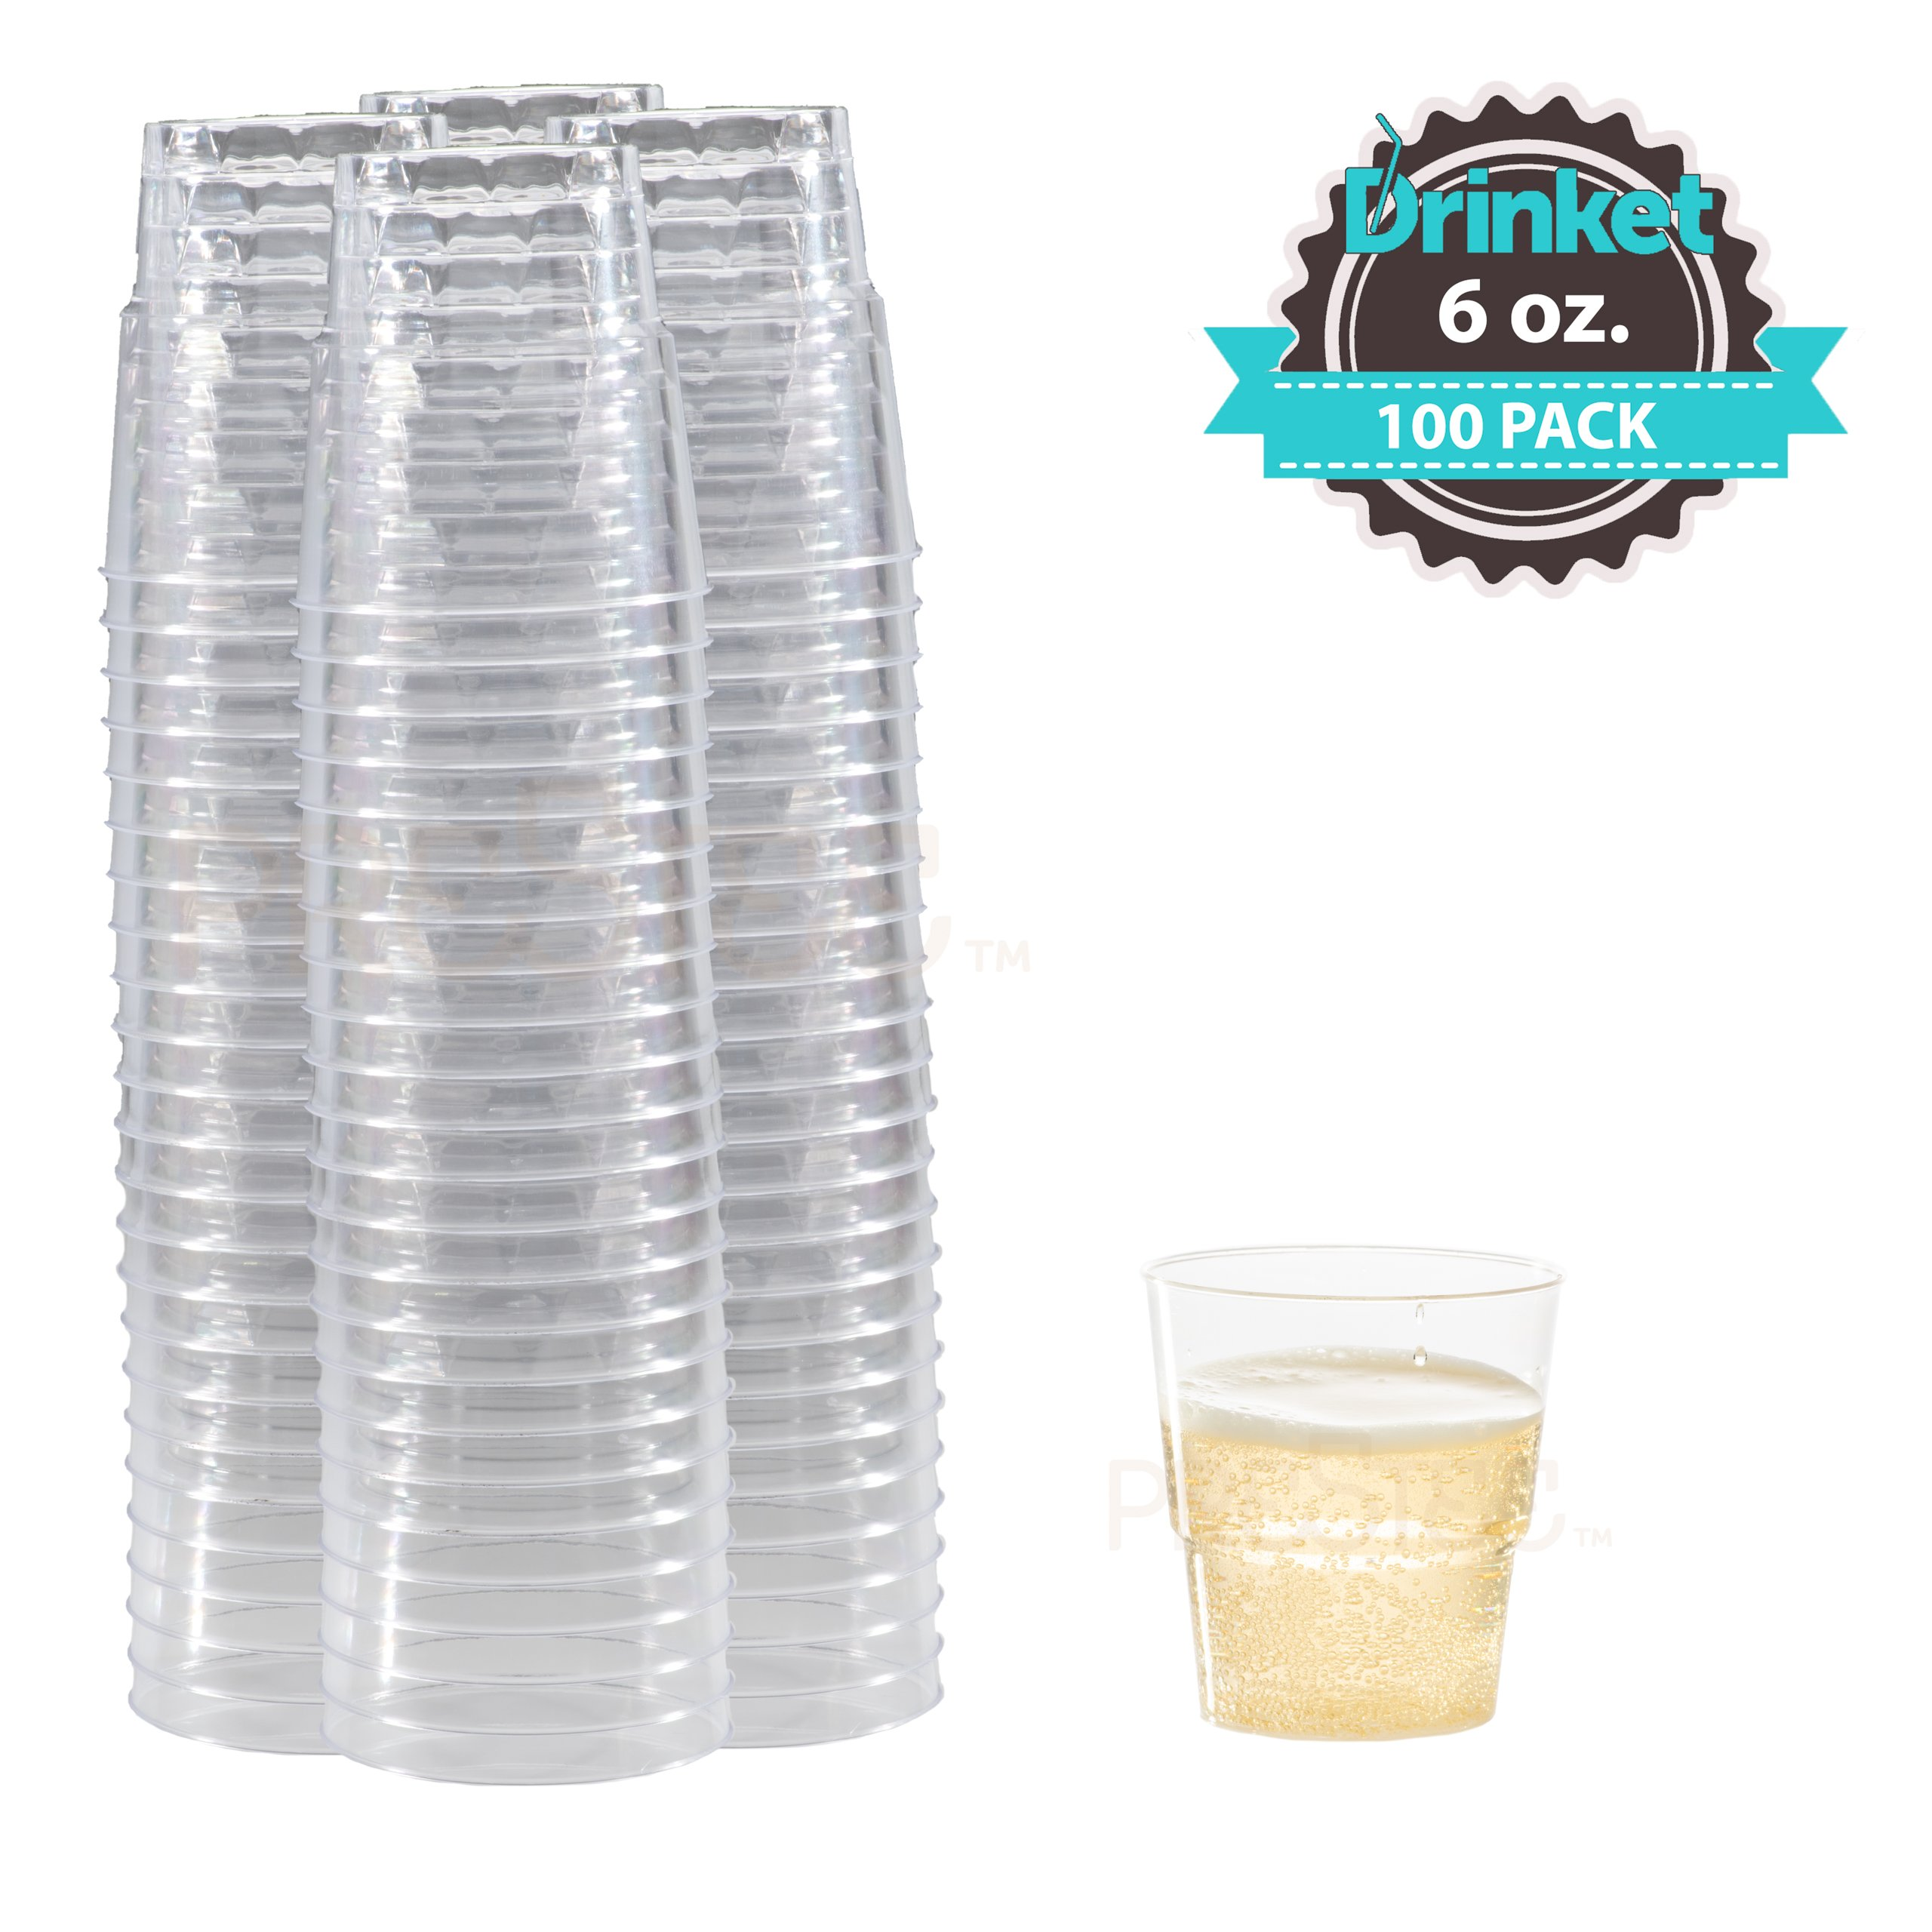 DRINKET Heavy Duty Crystal Clear Glasses Round Hard Plastic Cups 6 Oz Old Fashioned Tumbler 100 Count Bulk Pack Disposable / Reusable | Essential Wine Champagne Flutes Cocktail, Everyday Drinking Cup by Prestee